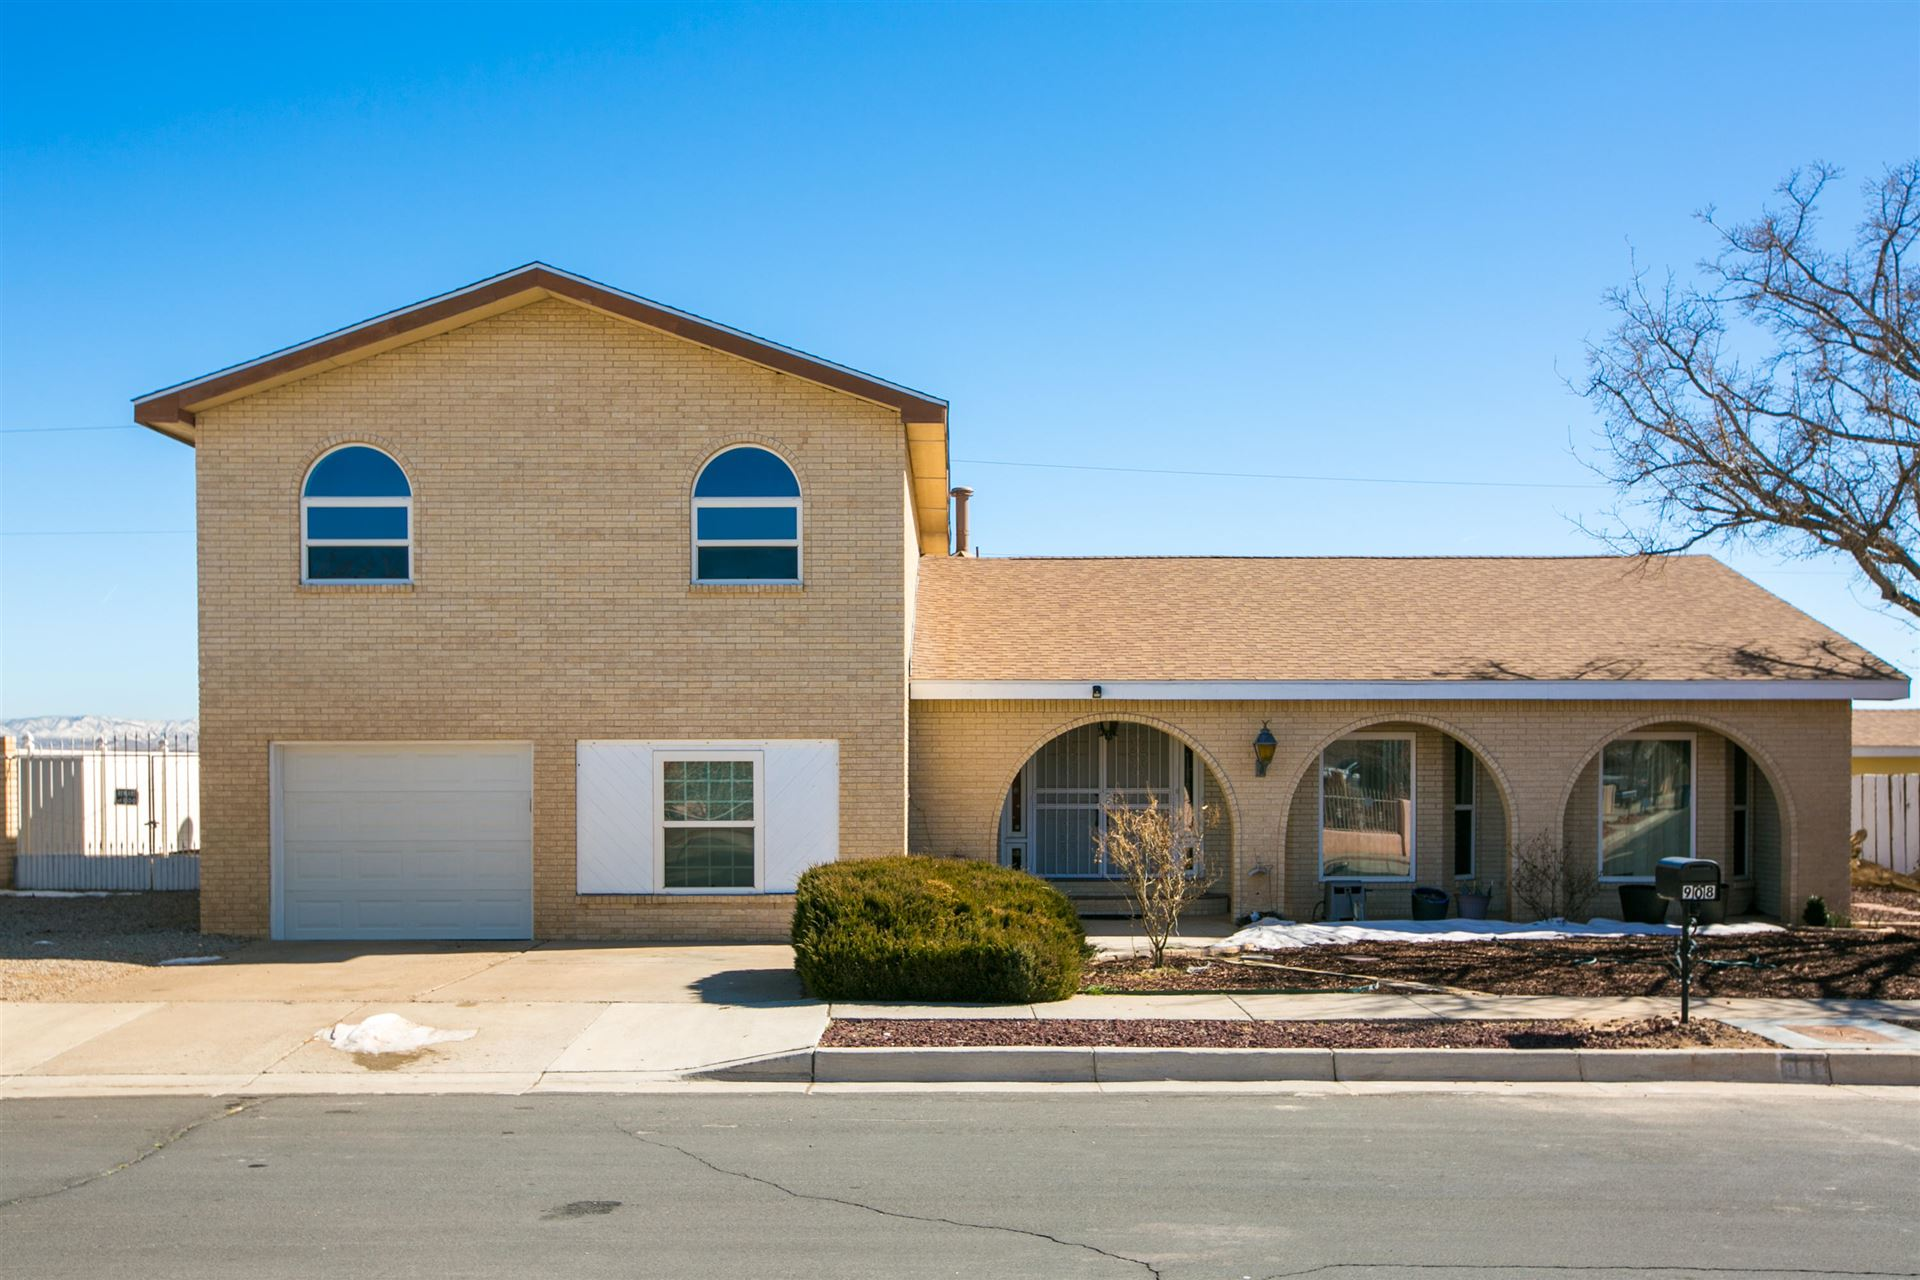 908 Alta Vista Court SW, Albuquerque, NM 87105 - MLS#: 986698